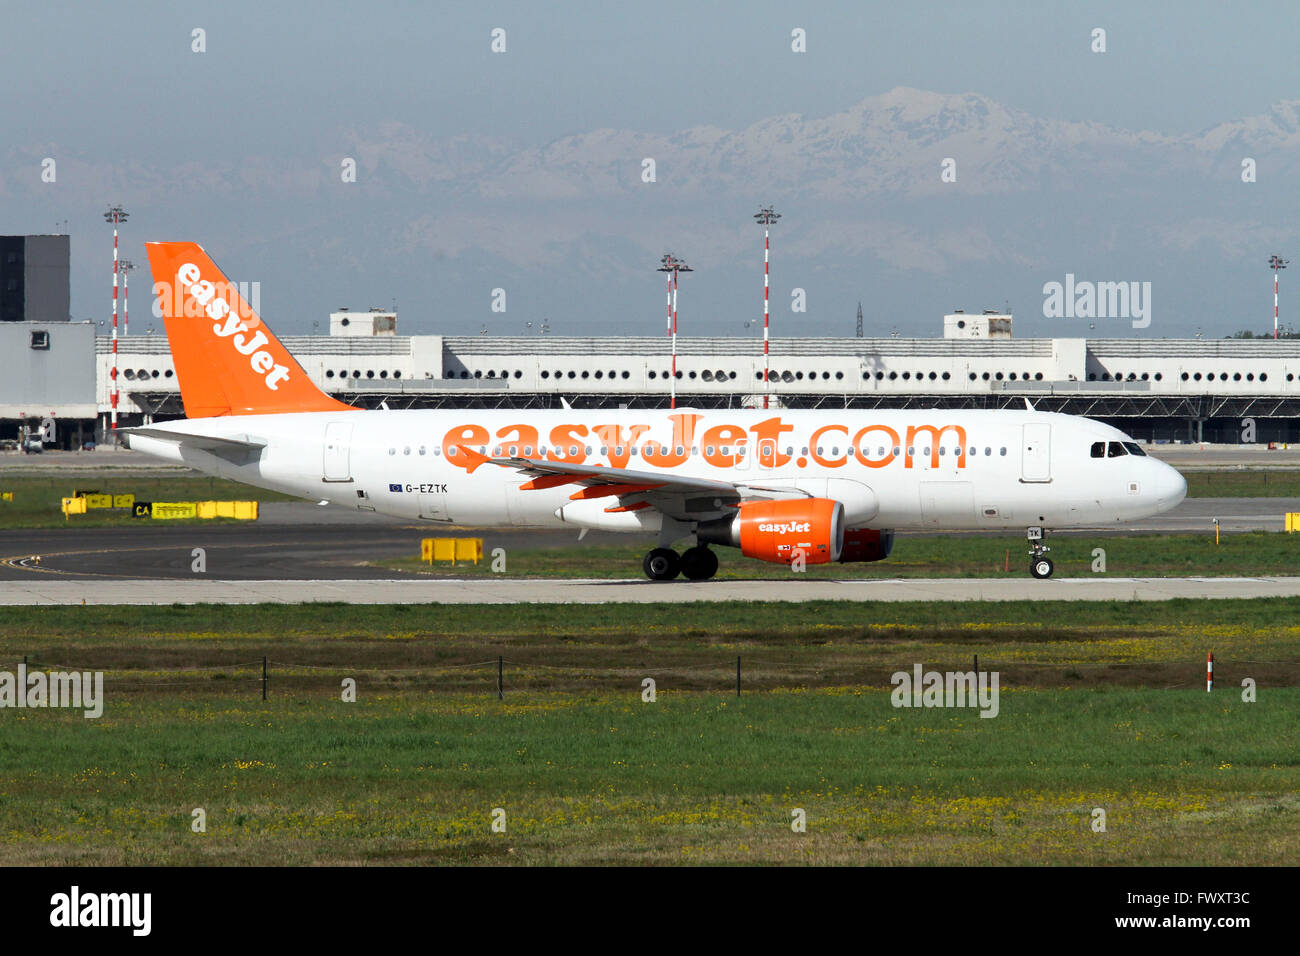 EasyJet, Airbus A320-214 at Linate airport, Milan, ItalyStock Photo